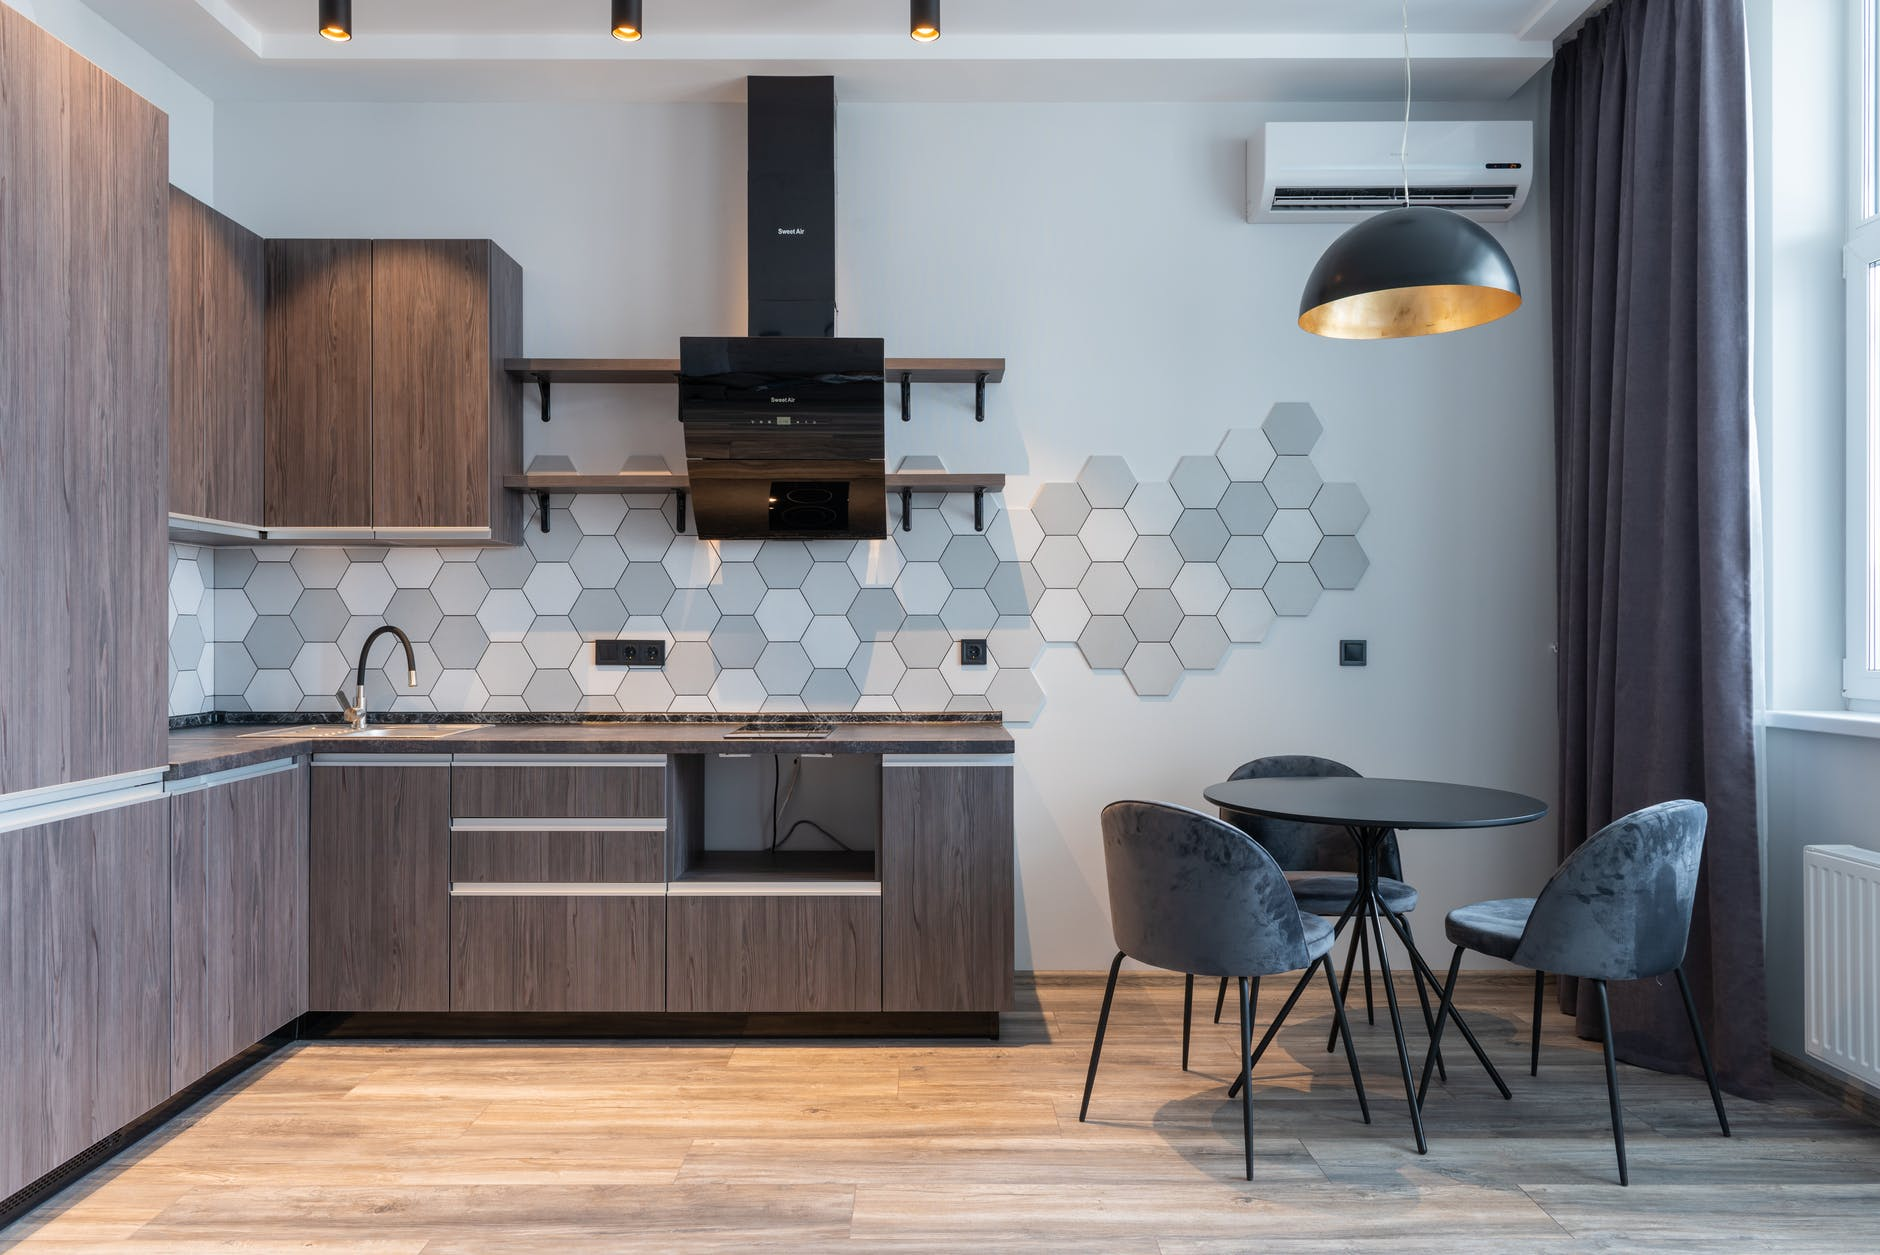 modern kitchen interior with furniture and lamp at home